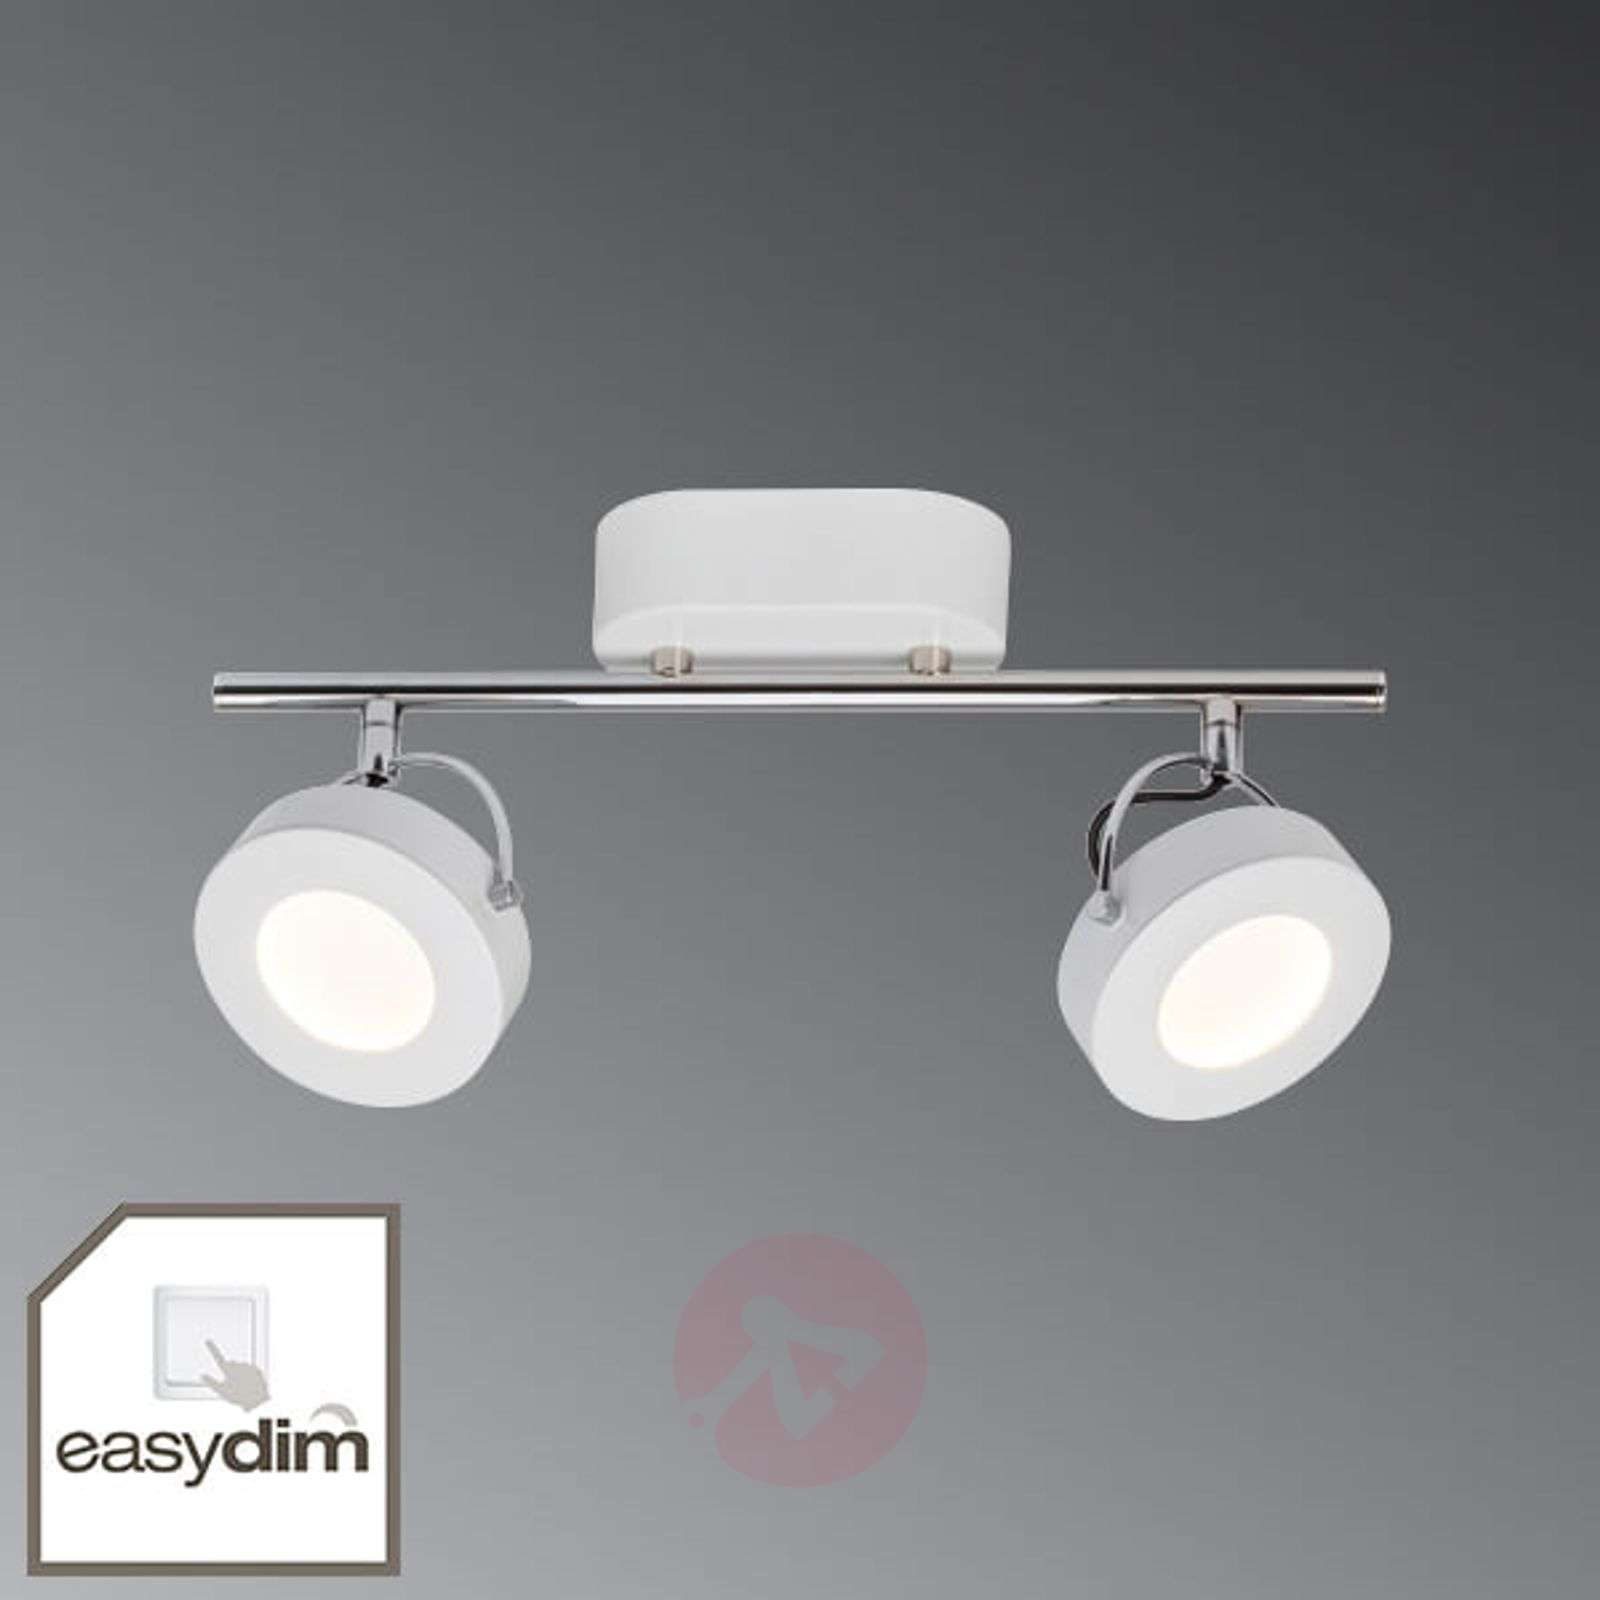 Dimmable Allora LED ceiling spotlight-3057105-01